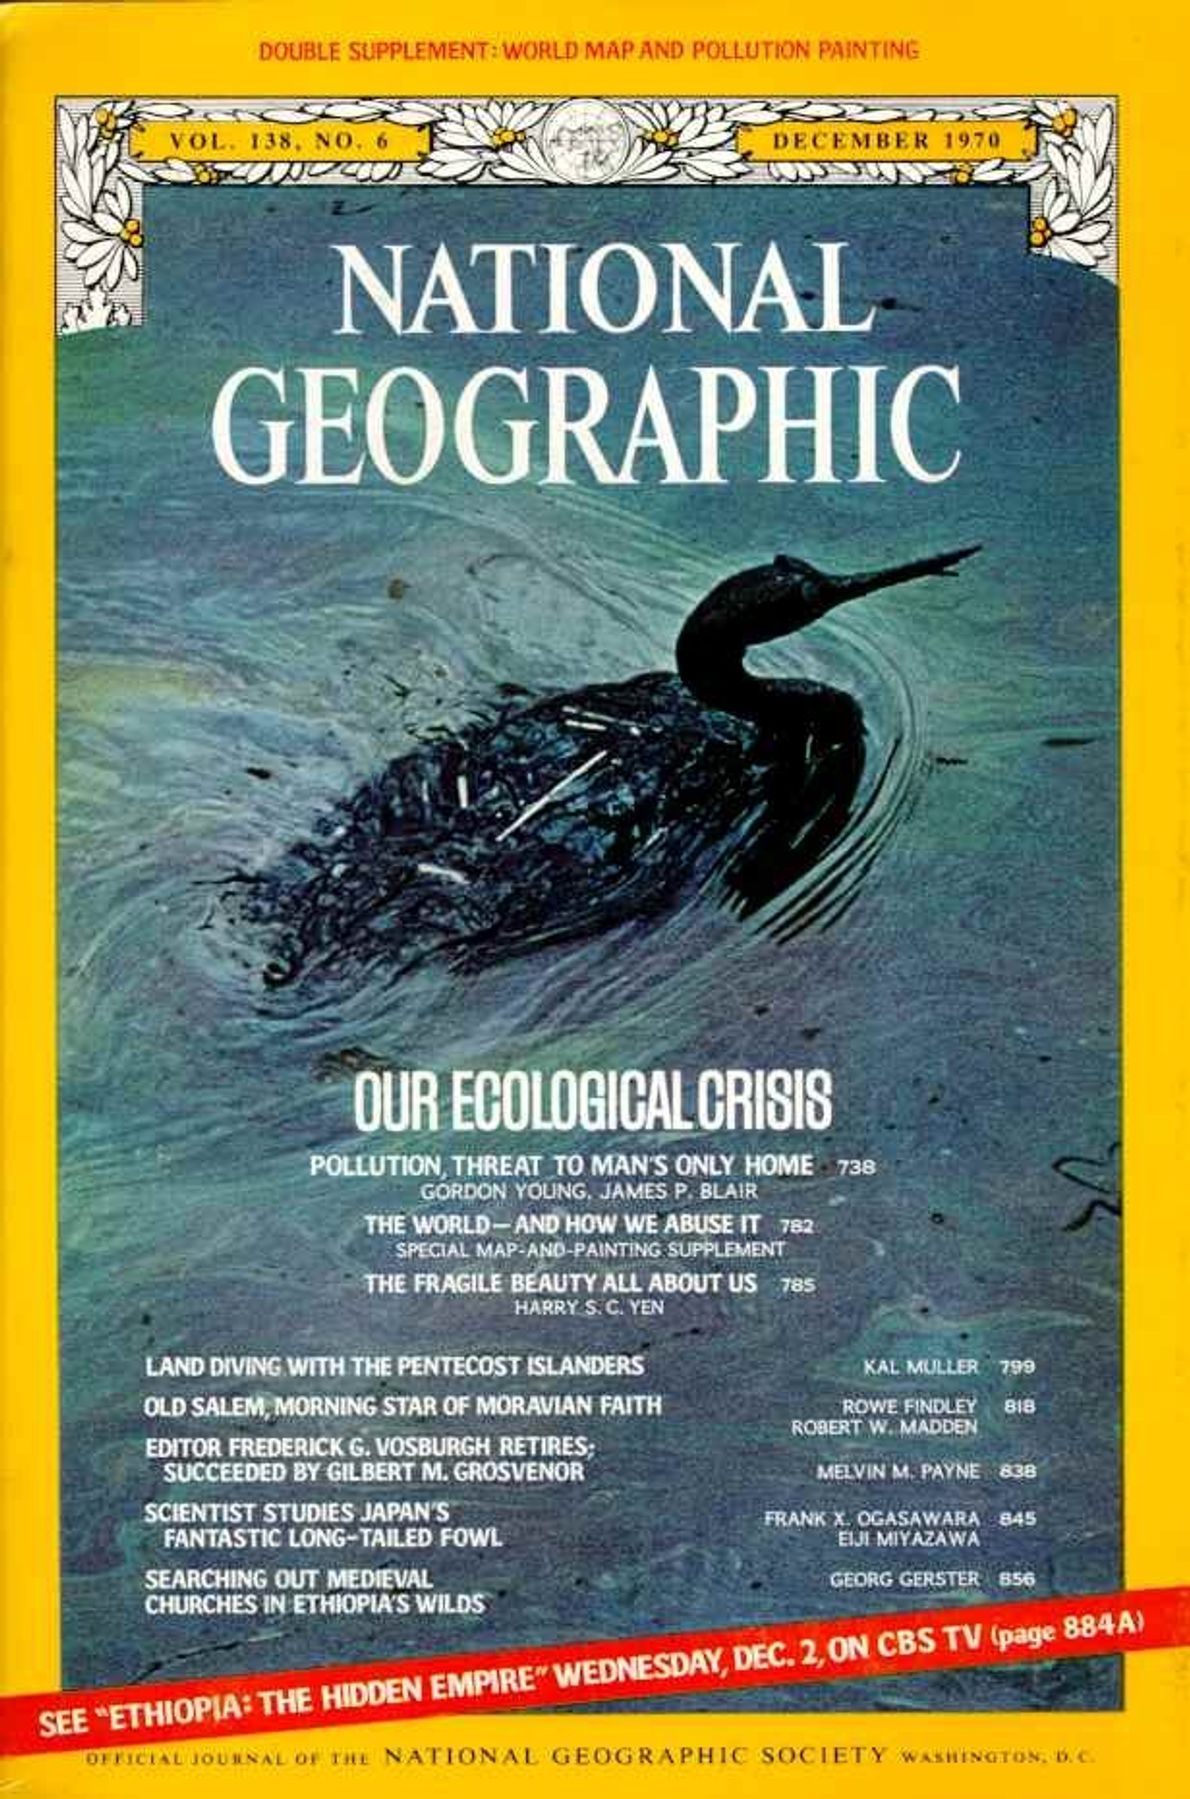 December 1970—Our Ecological Crisis